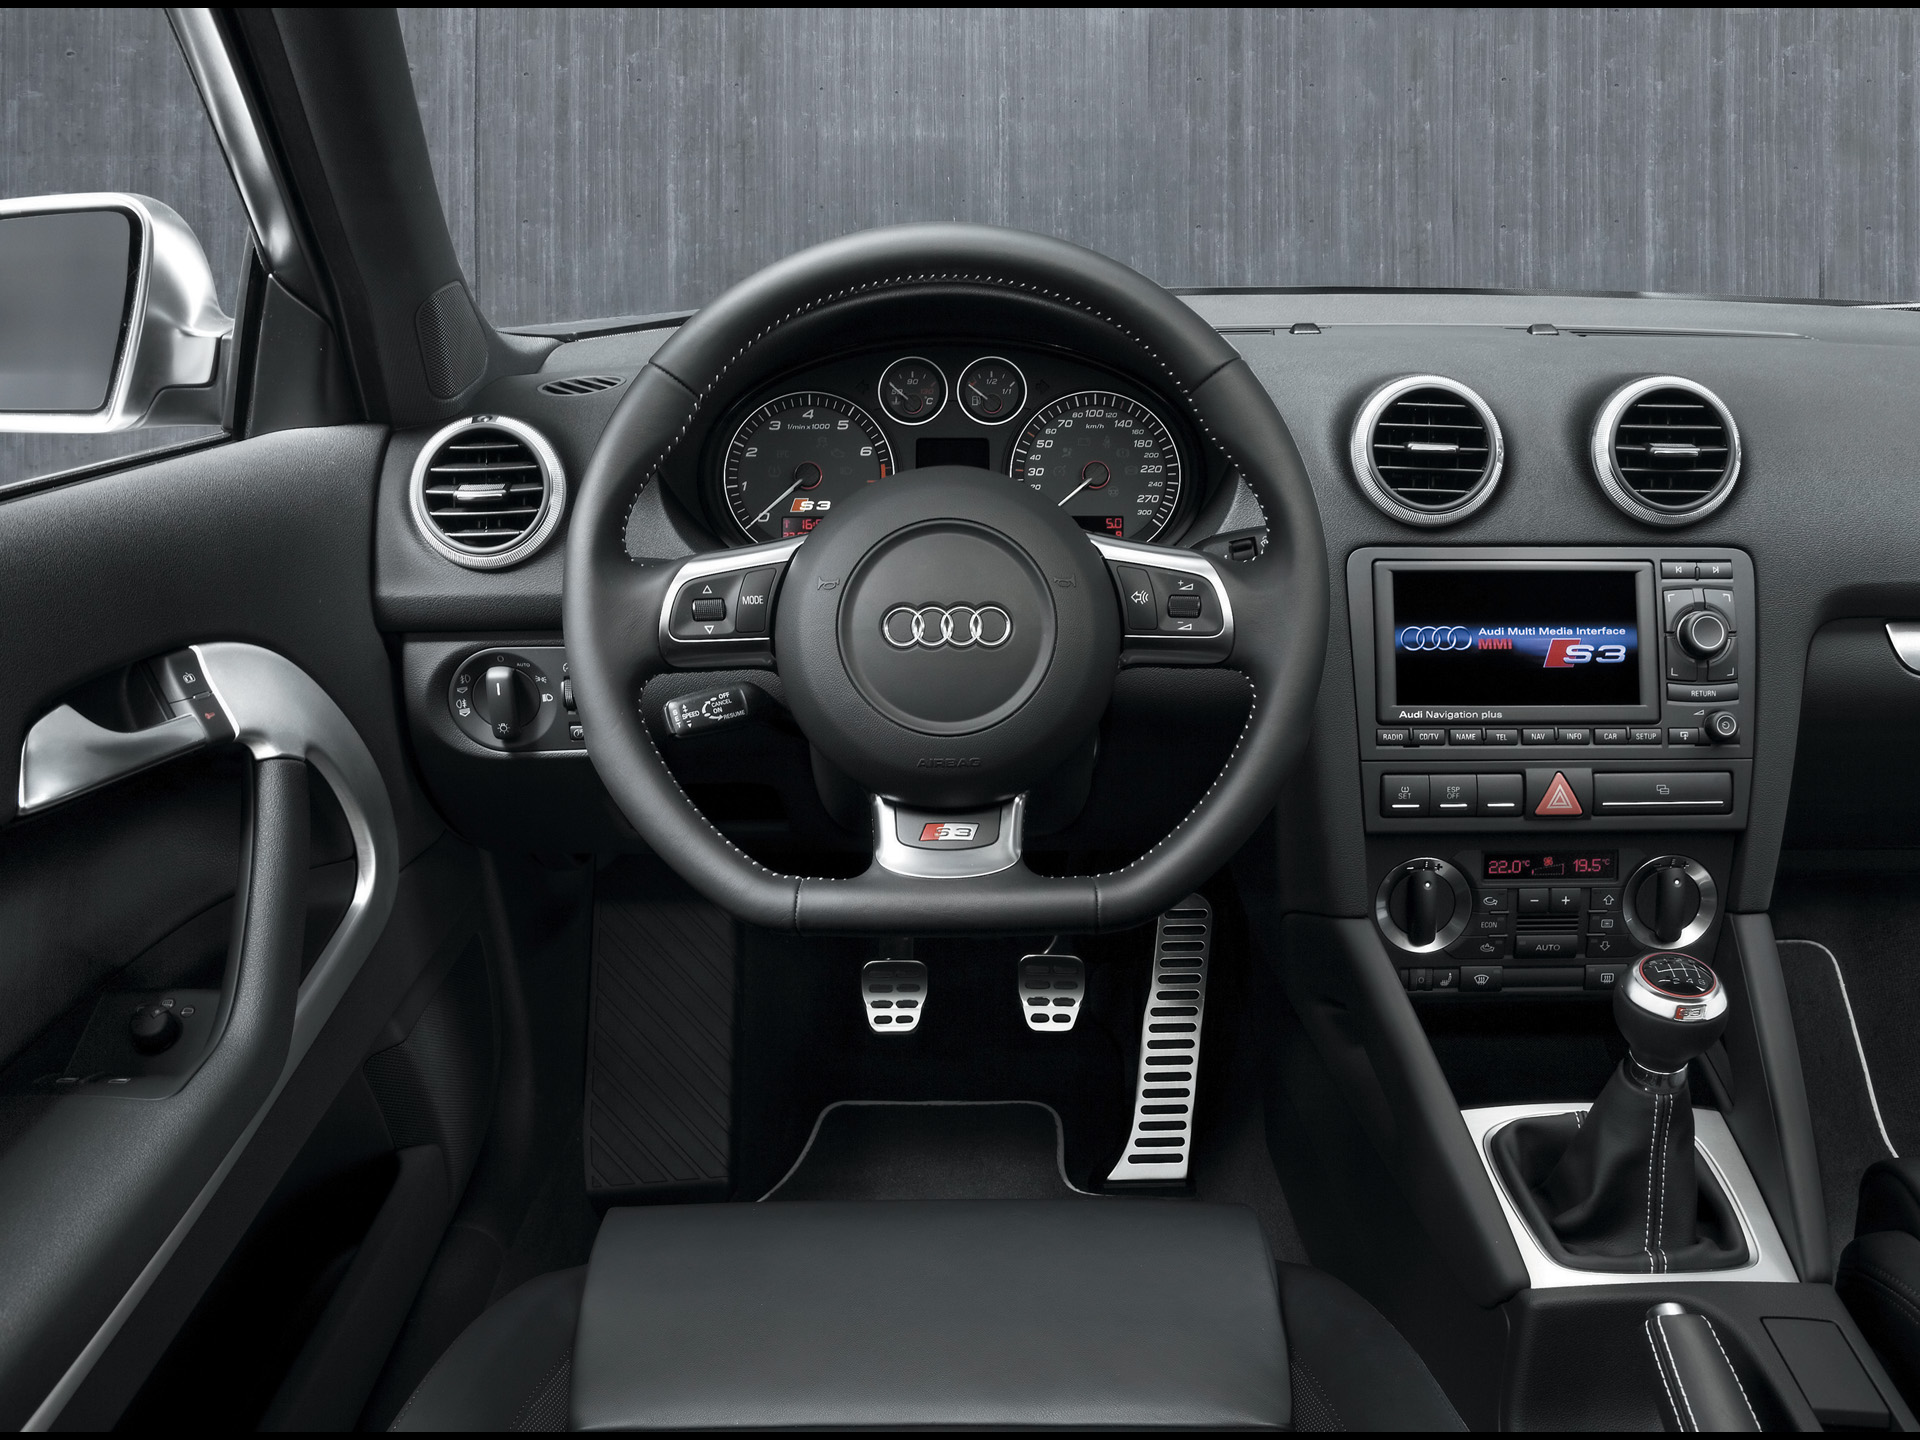 Audi A3 Sportback Interieur 2007 Audi S3 Top Speed